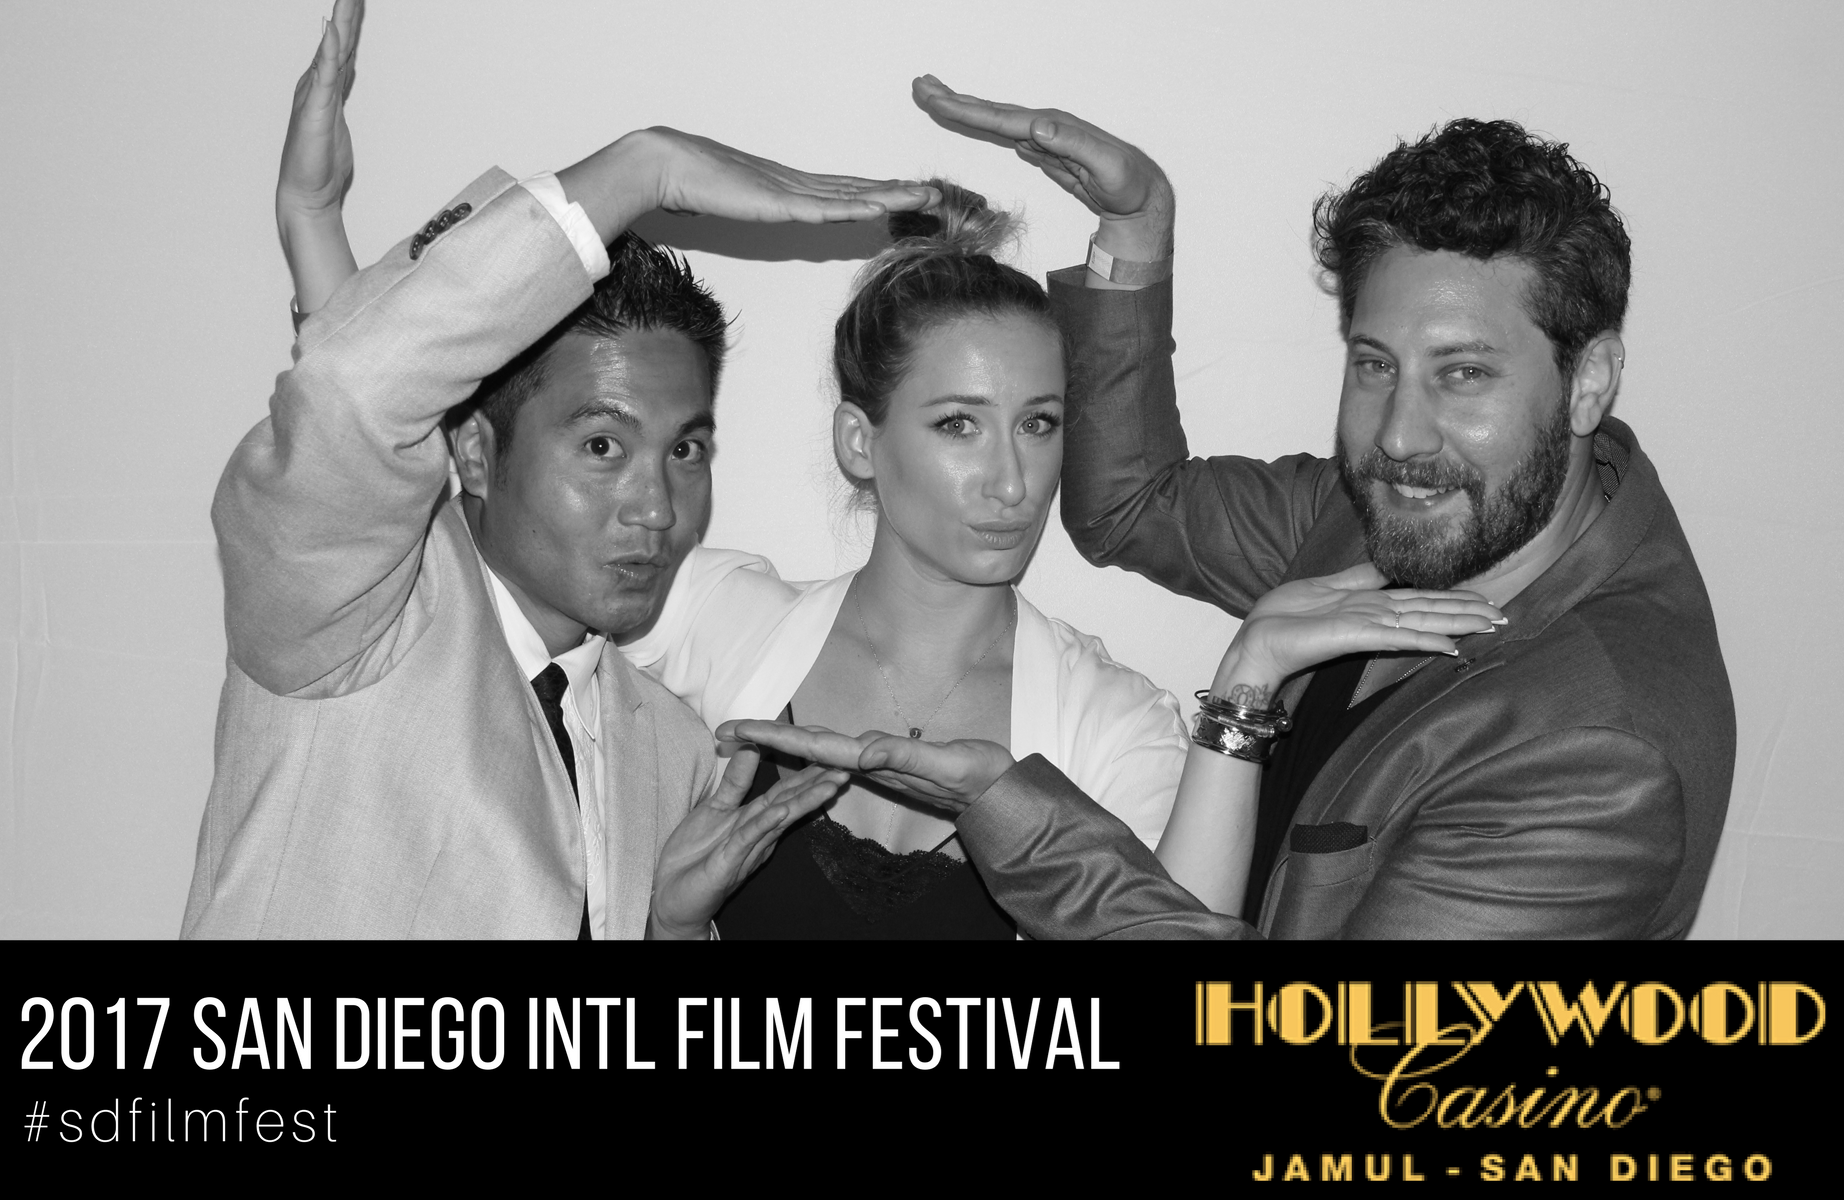 2017 San Diego International Film Festival Photo Booth images in Jamul - San Diego.